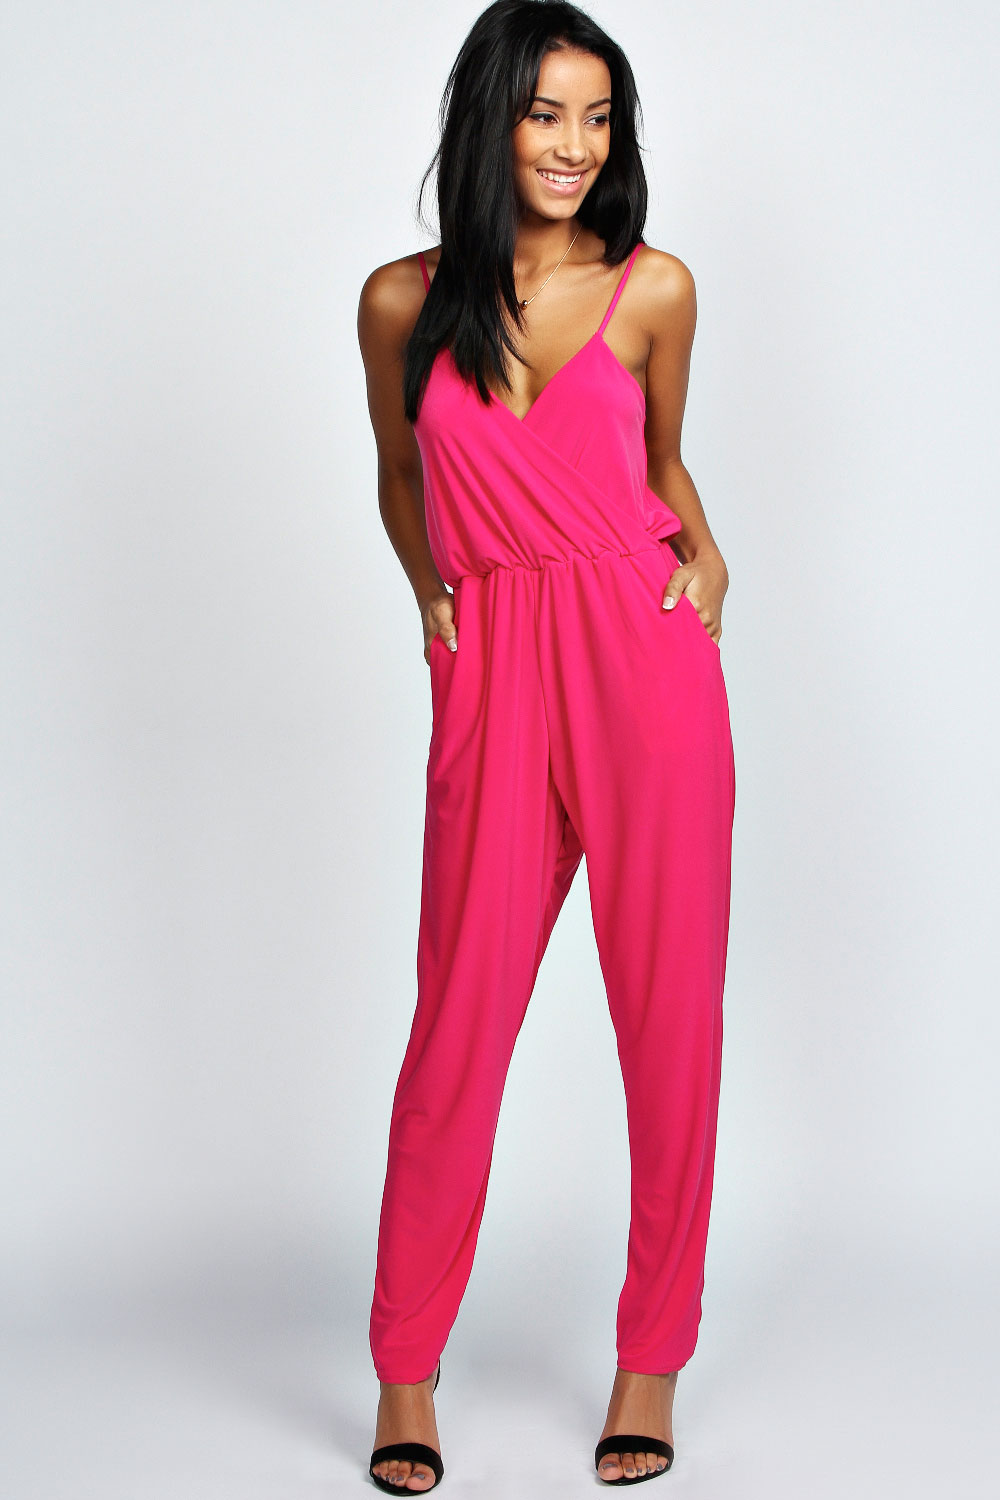 The latest Tweets from Pink Jumpsuit Boxing (@pinkjumpsuitbox). Follow us on Instagram @pinkjumpsuitbox. canada eh?!